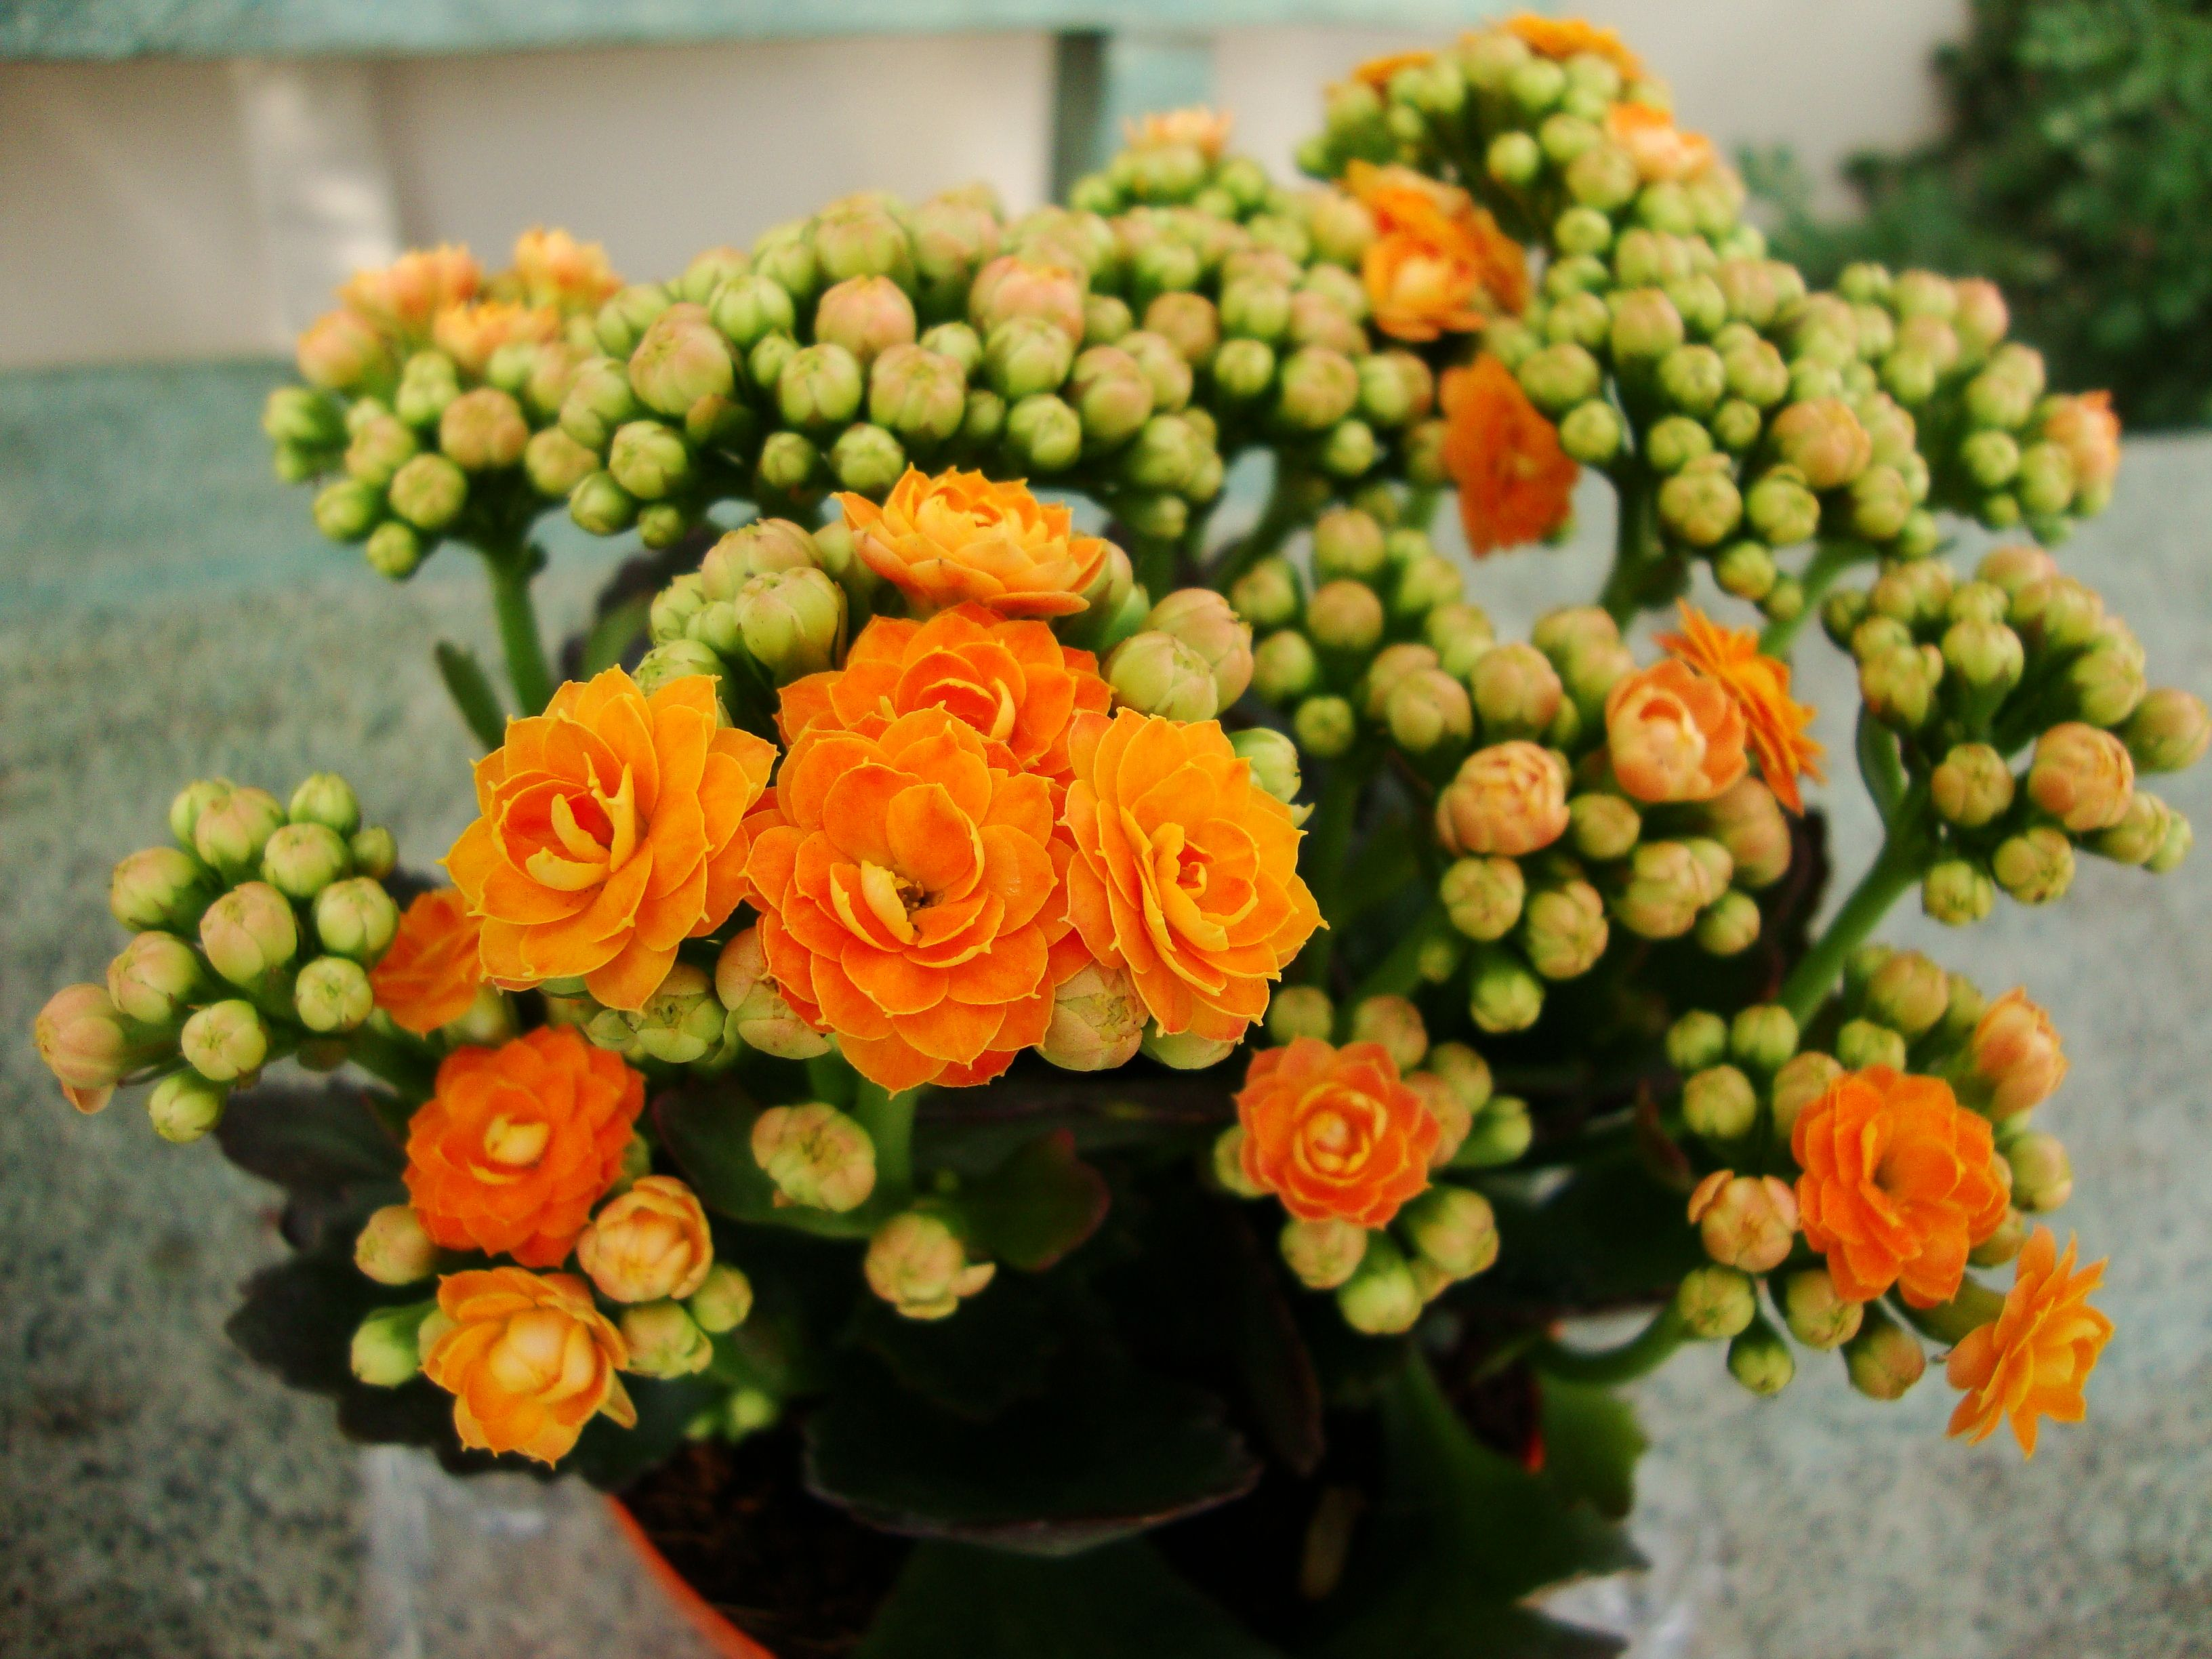 17 Best images about Kalanchoe on Pinterest | Tropical, Yellow and ...